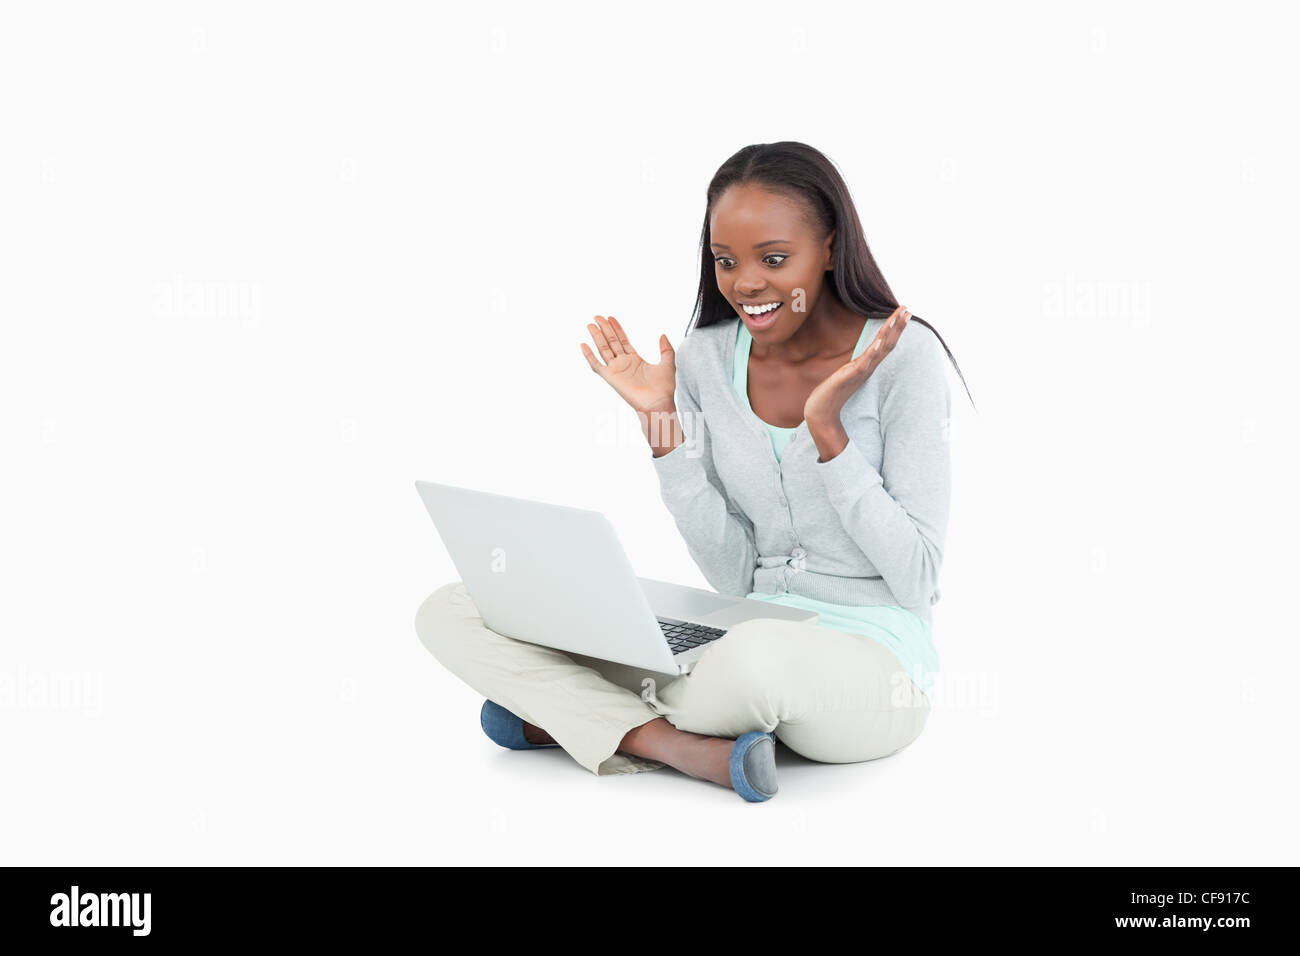 Young woman happy about whats on her screen - Stock Image